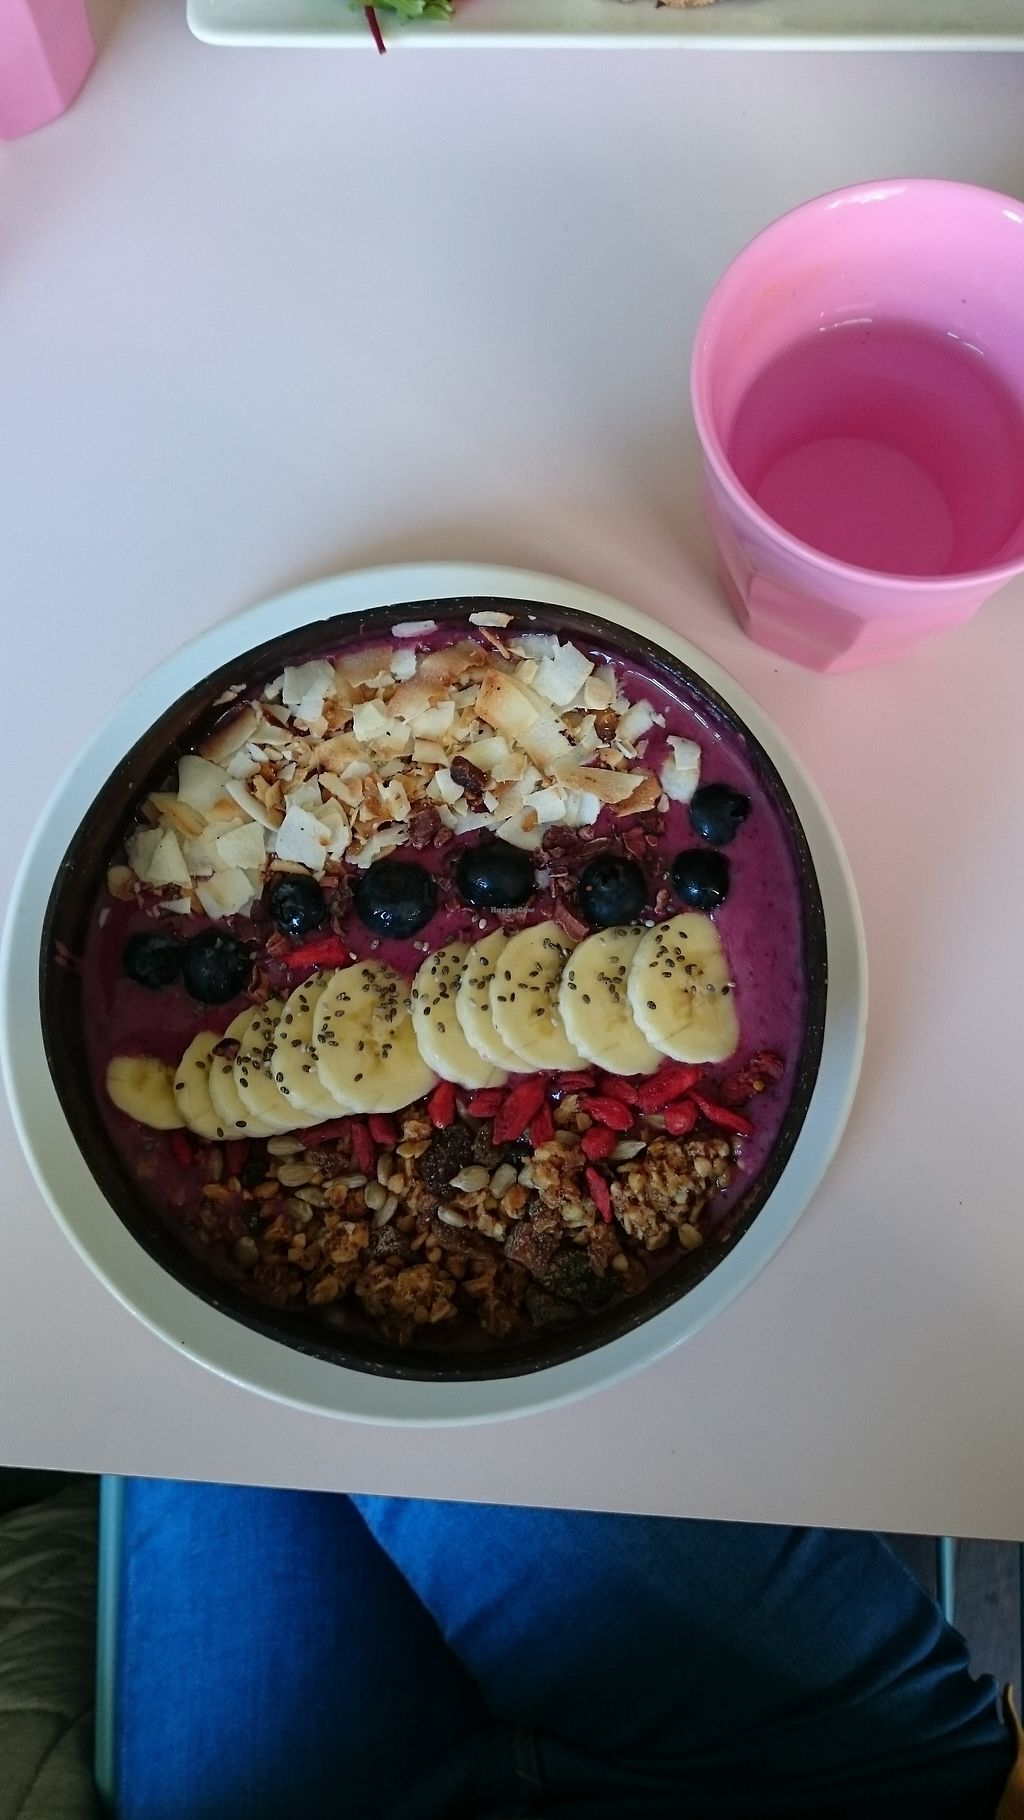 """Photo of Hula Juice Cafe  by <a href=""""/members/profile/Layra"""">Layra</a> <br/>Acai bowl <br/> October 24, 2017  - <a href='/contact/abuse/image/78825/318265'>Report</a>"""